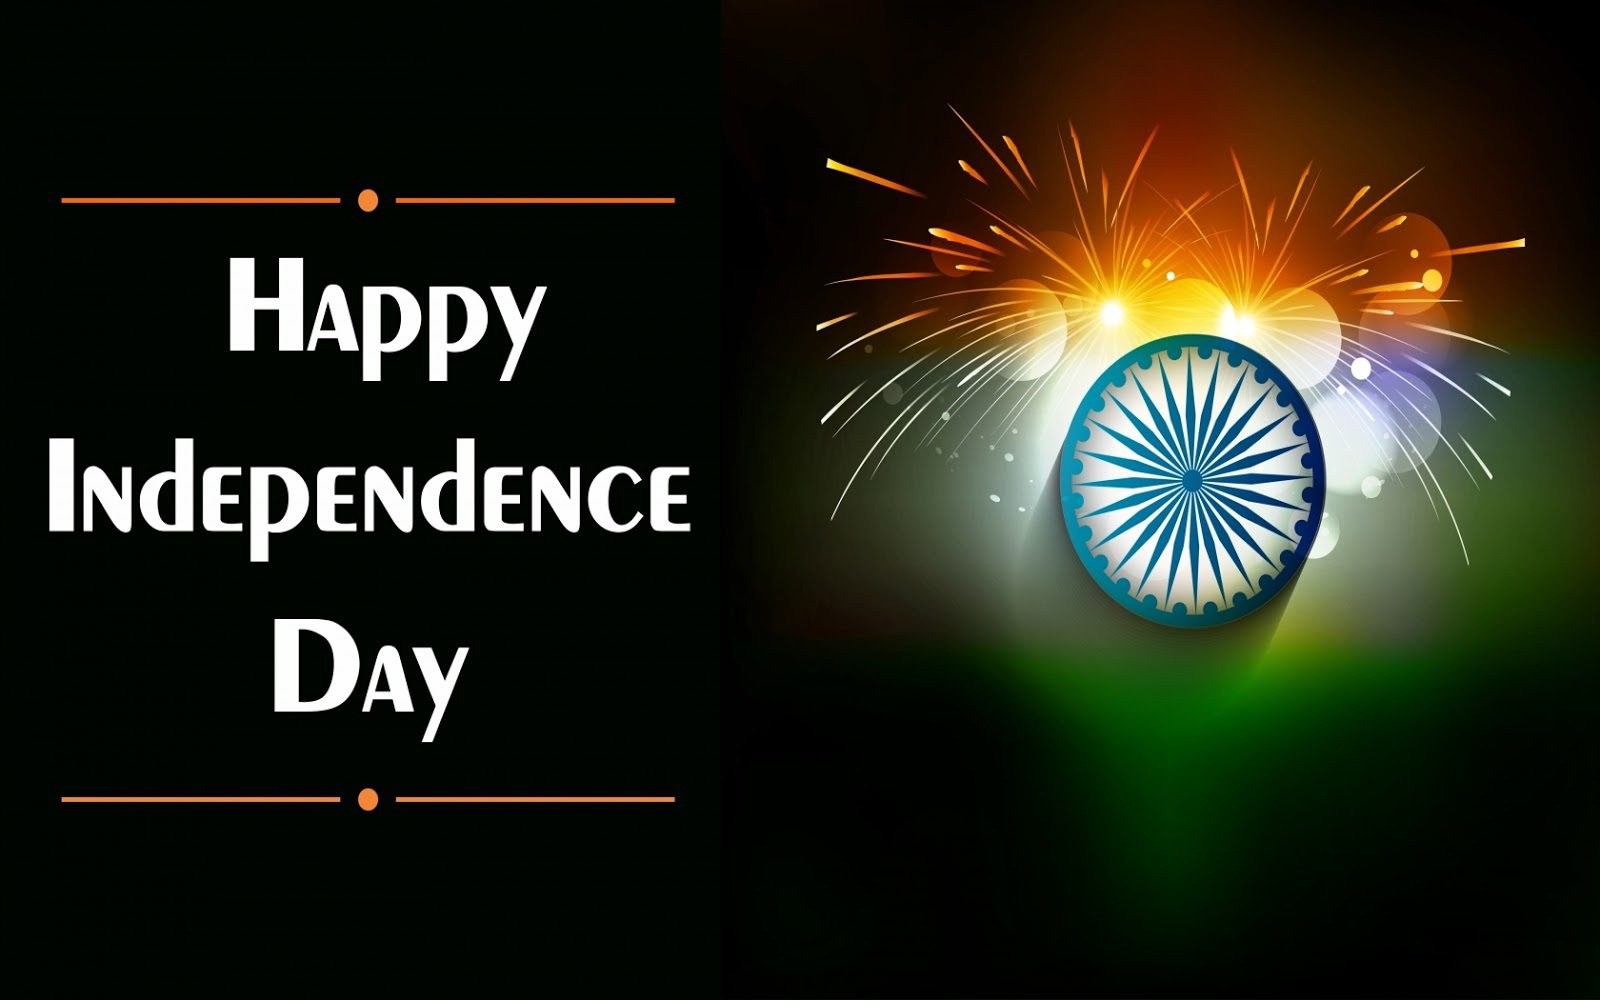 Happy Independence Day Hd Wallpapers Images Photos Wallpapers Lap